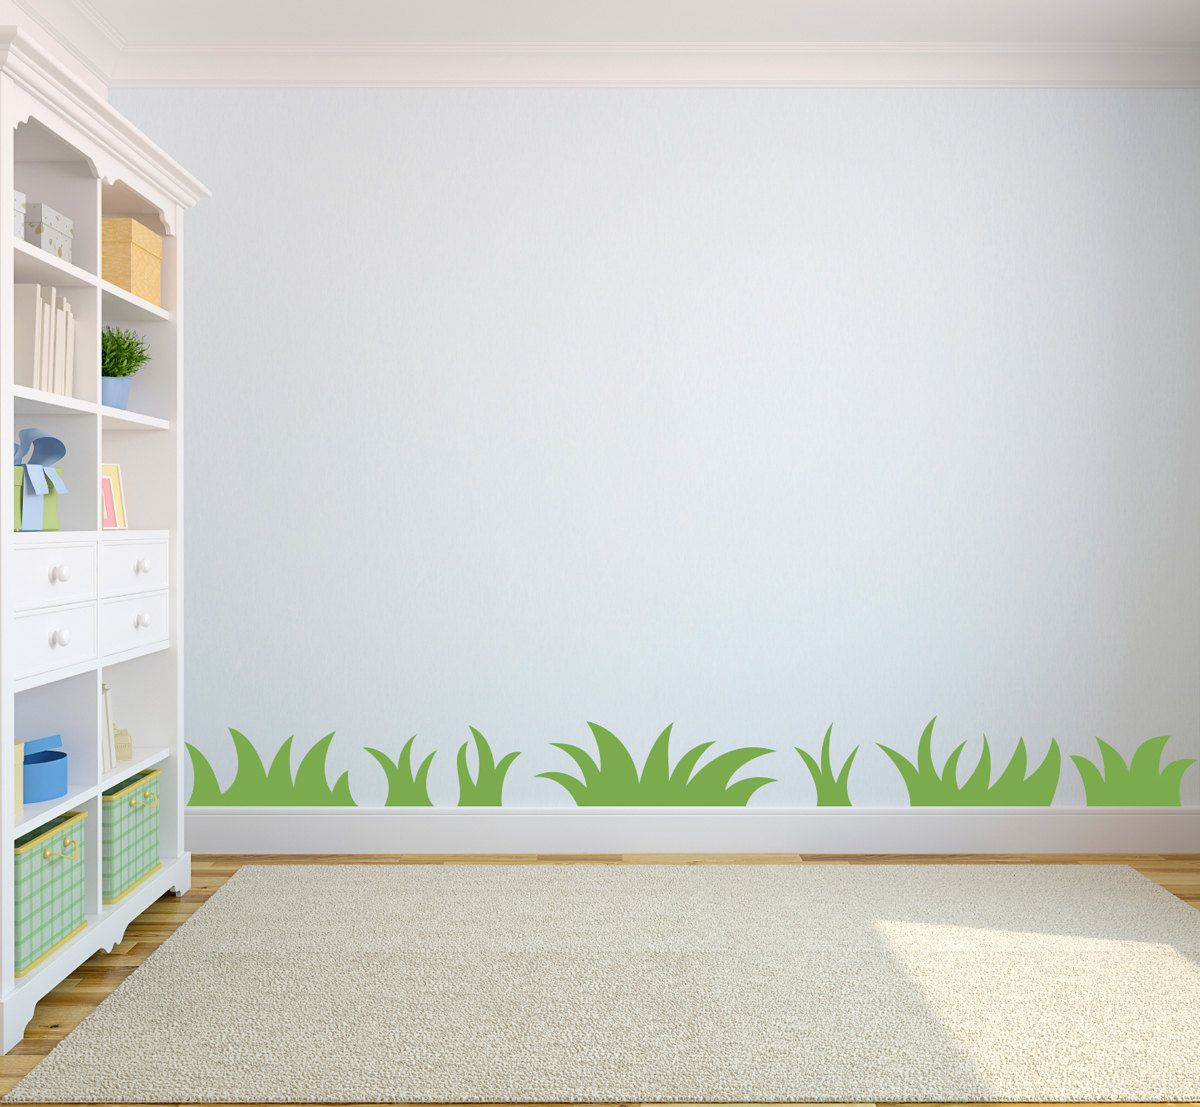 Grass wall decal nature wall art for kids bedroom set Kids room wall painting design